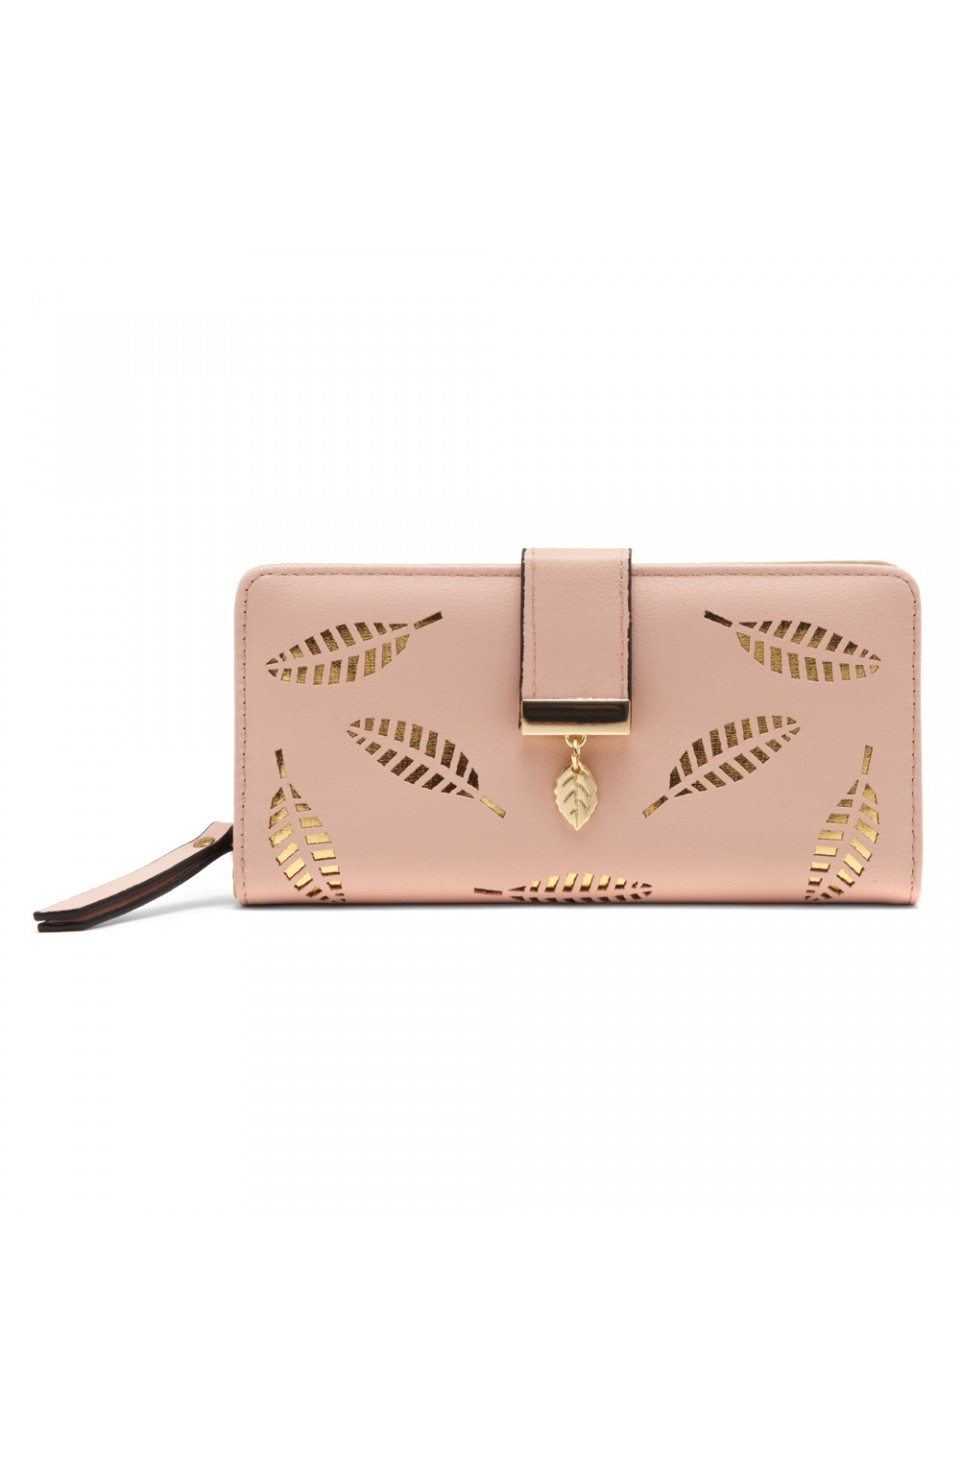 SZ17-LH1-15739 - Women's Wallet with Card slots and ID window Zipper Purse  (Pink)